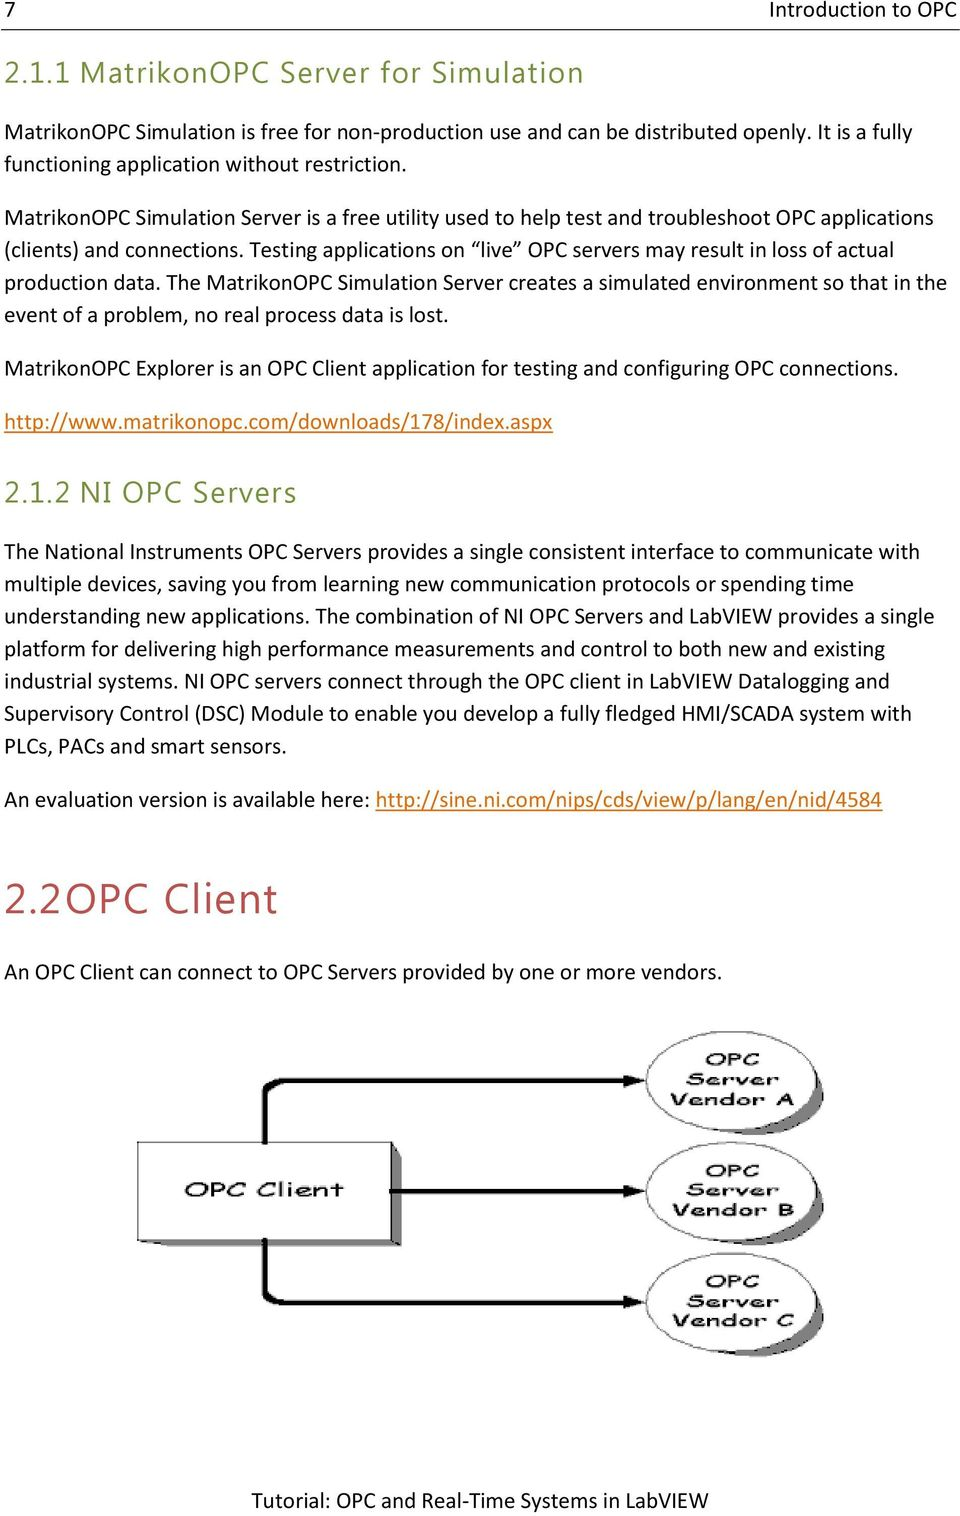 OPC and Real-Time Systems in LabVIEW - PDF